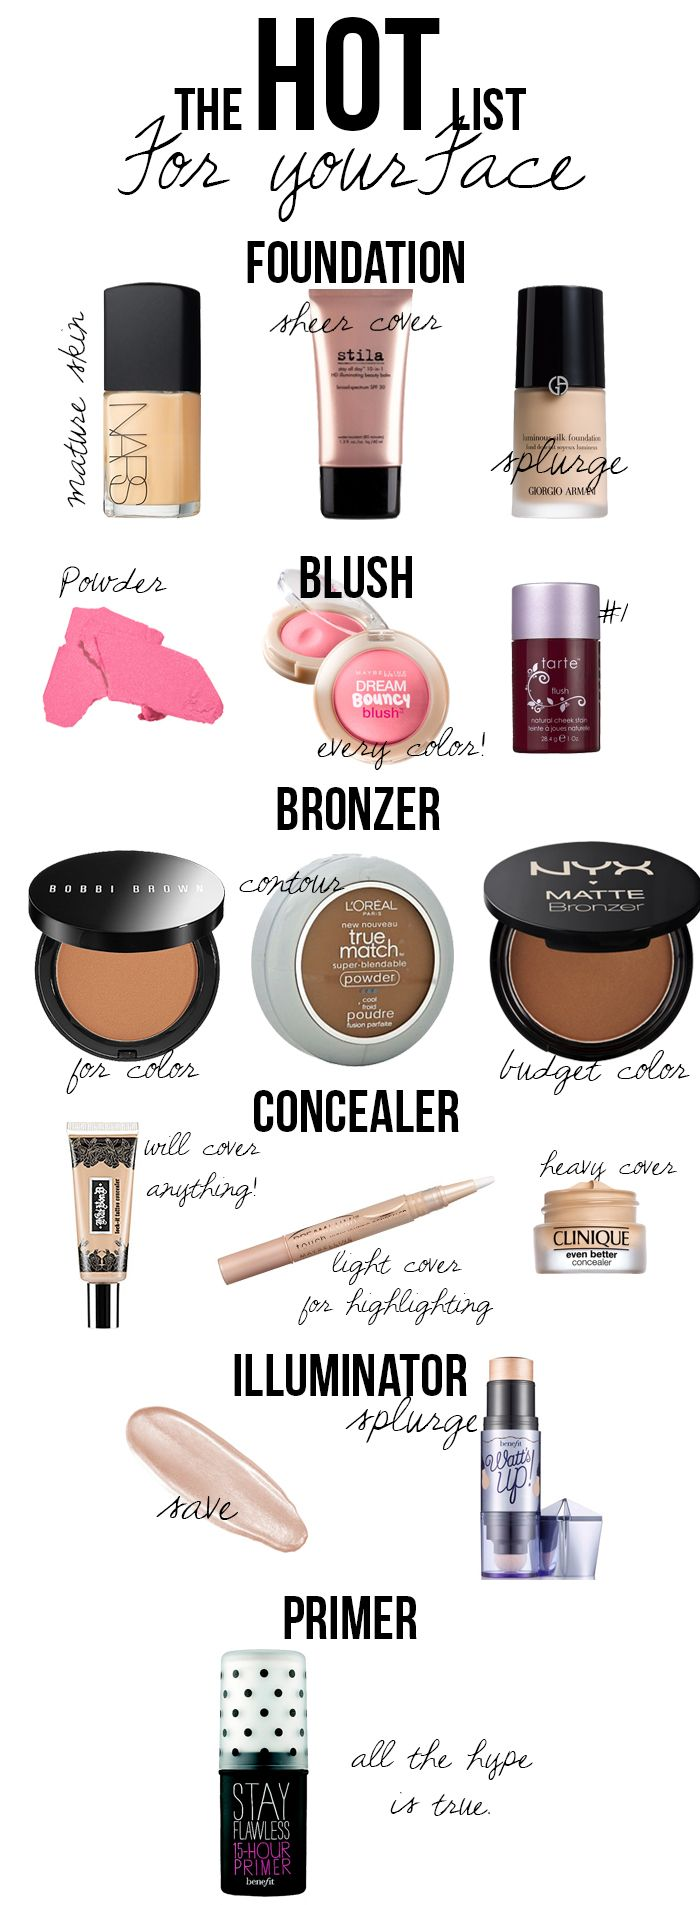 Maskcara blog, beauty products tried and true. I trust the recommendations and also use the MK products I have to substitute